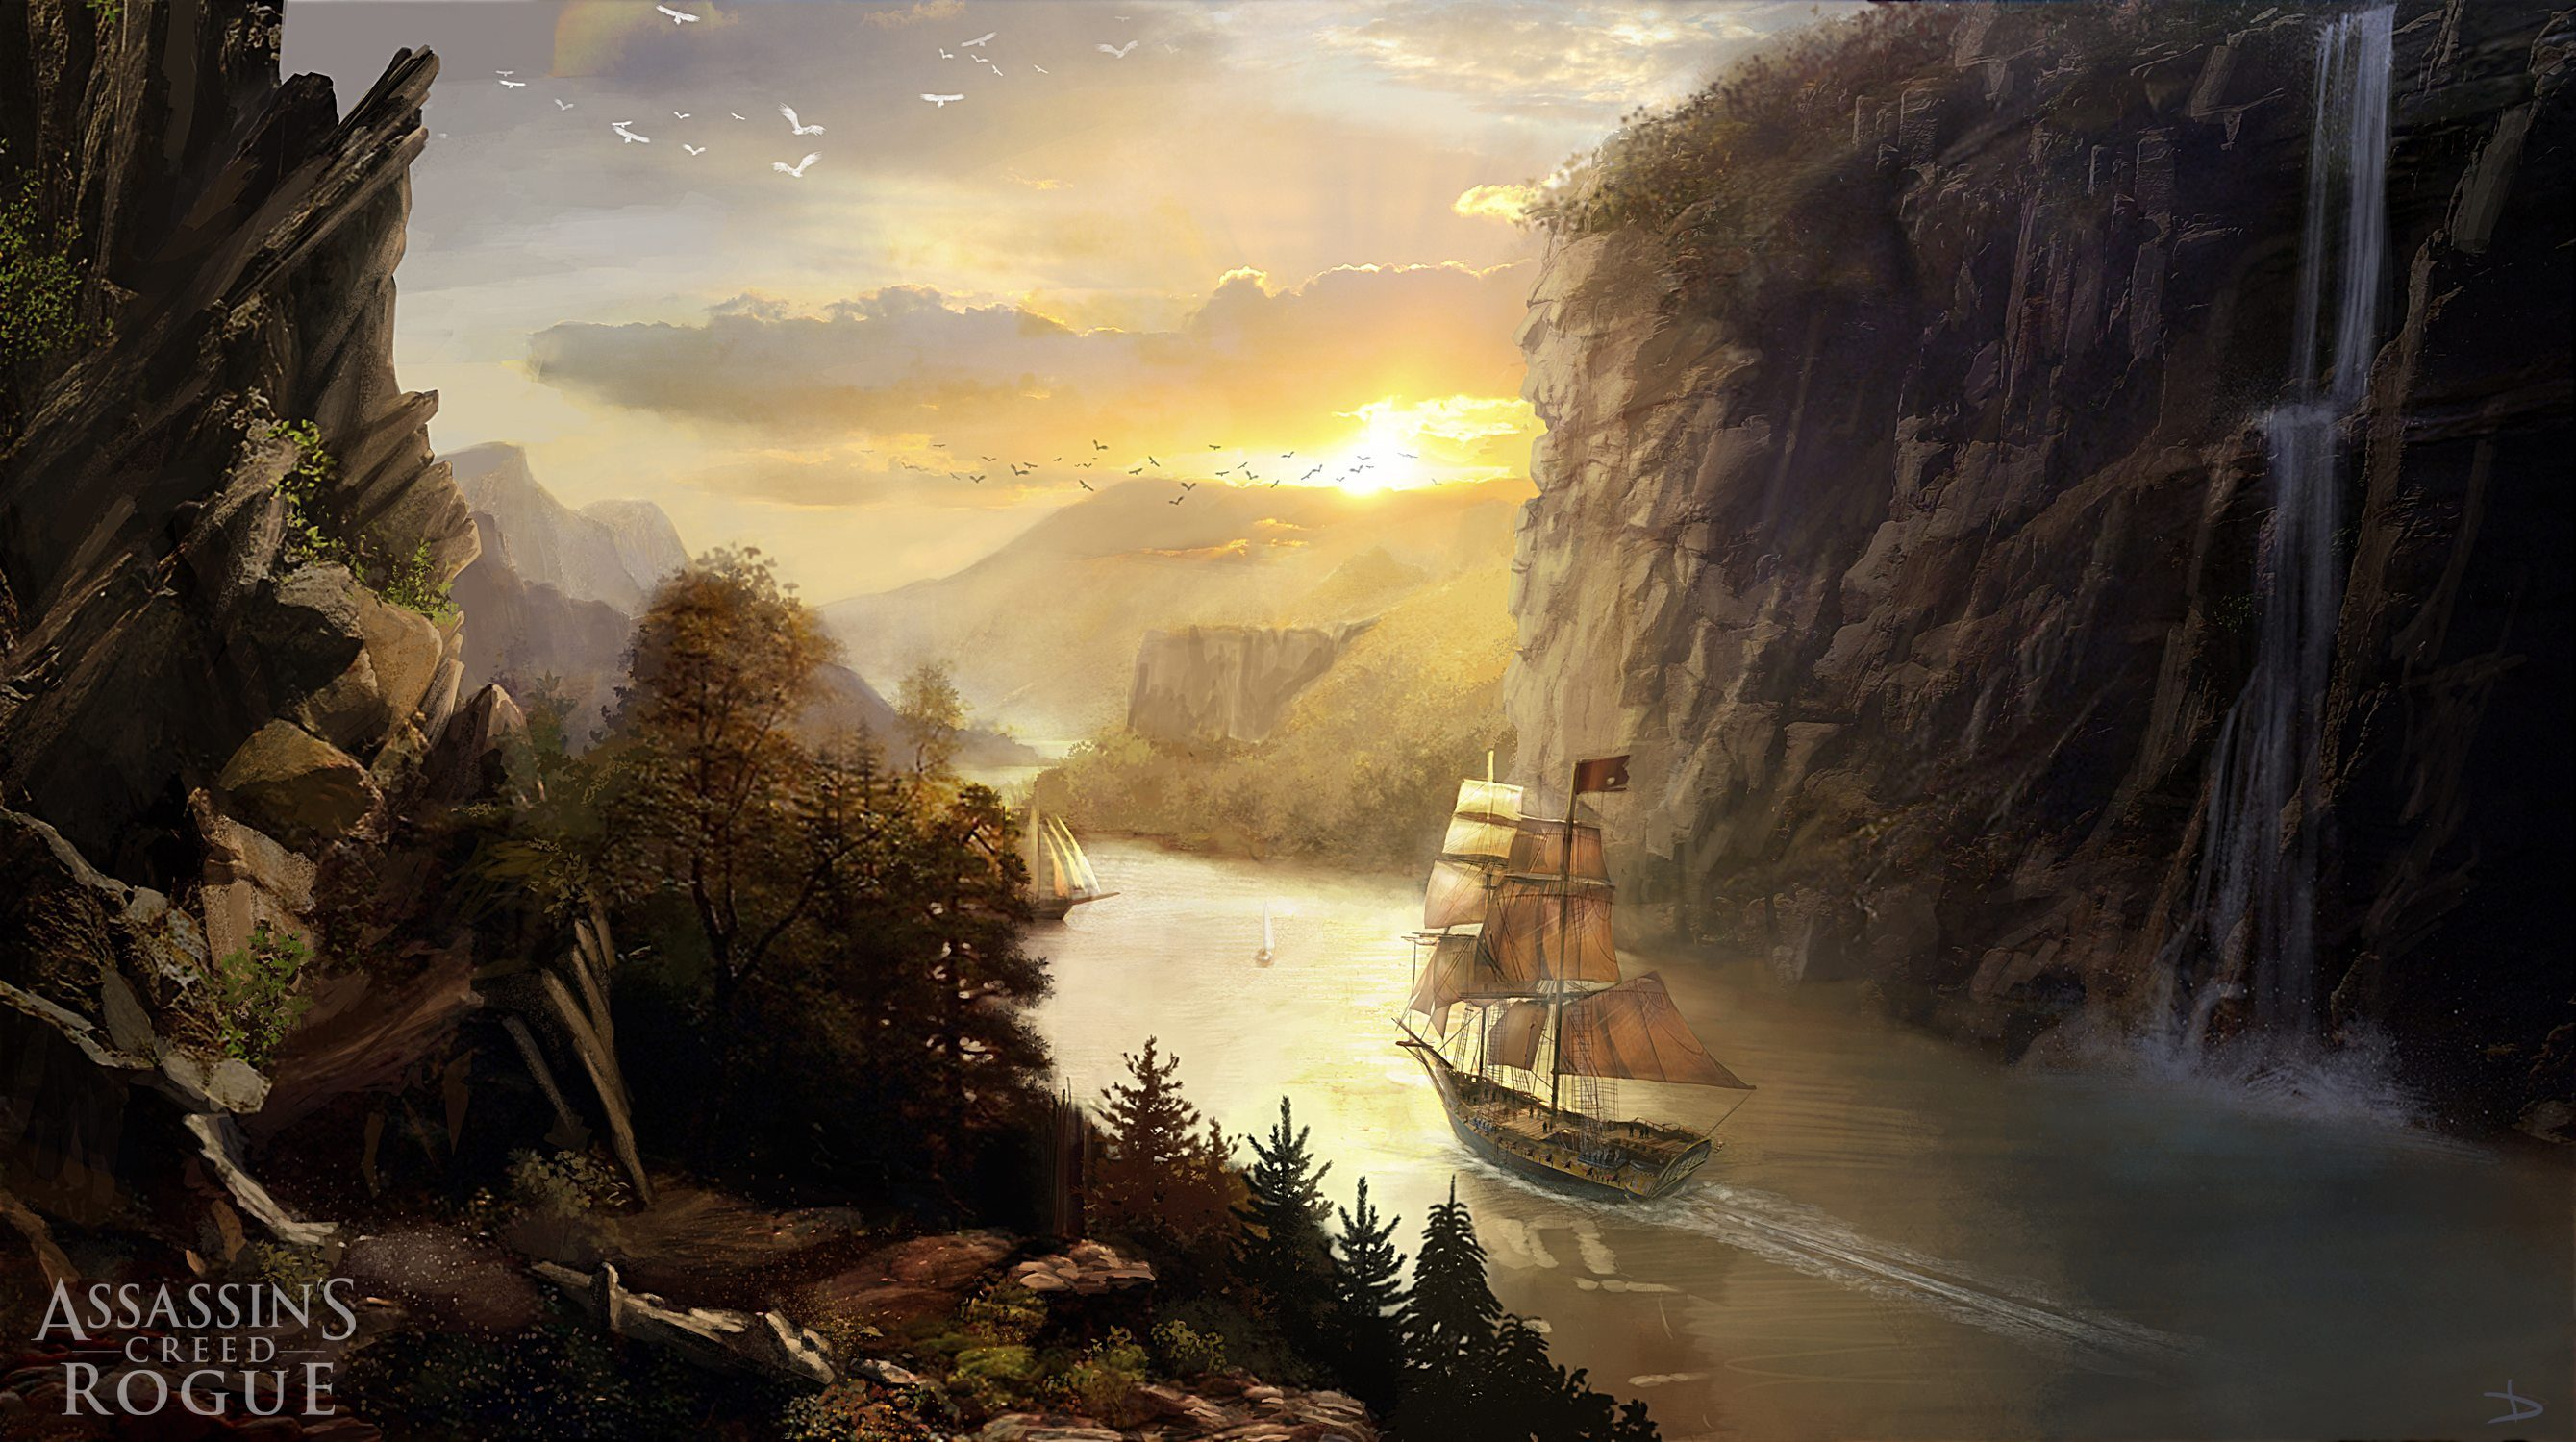 Assassins Creed Rogue Concept Art 3